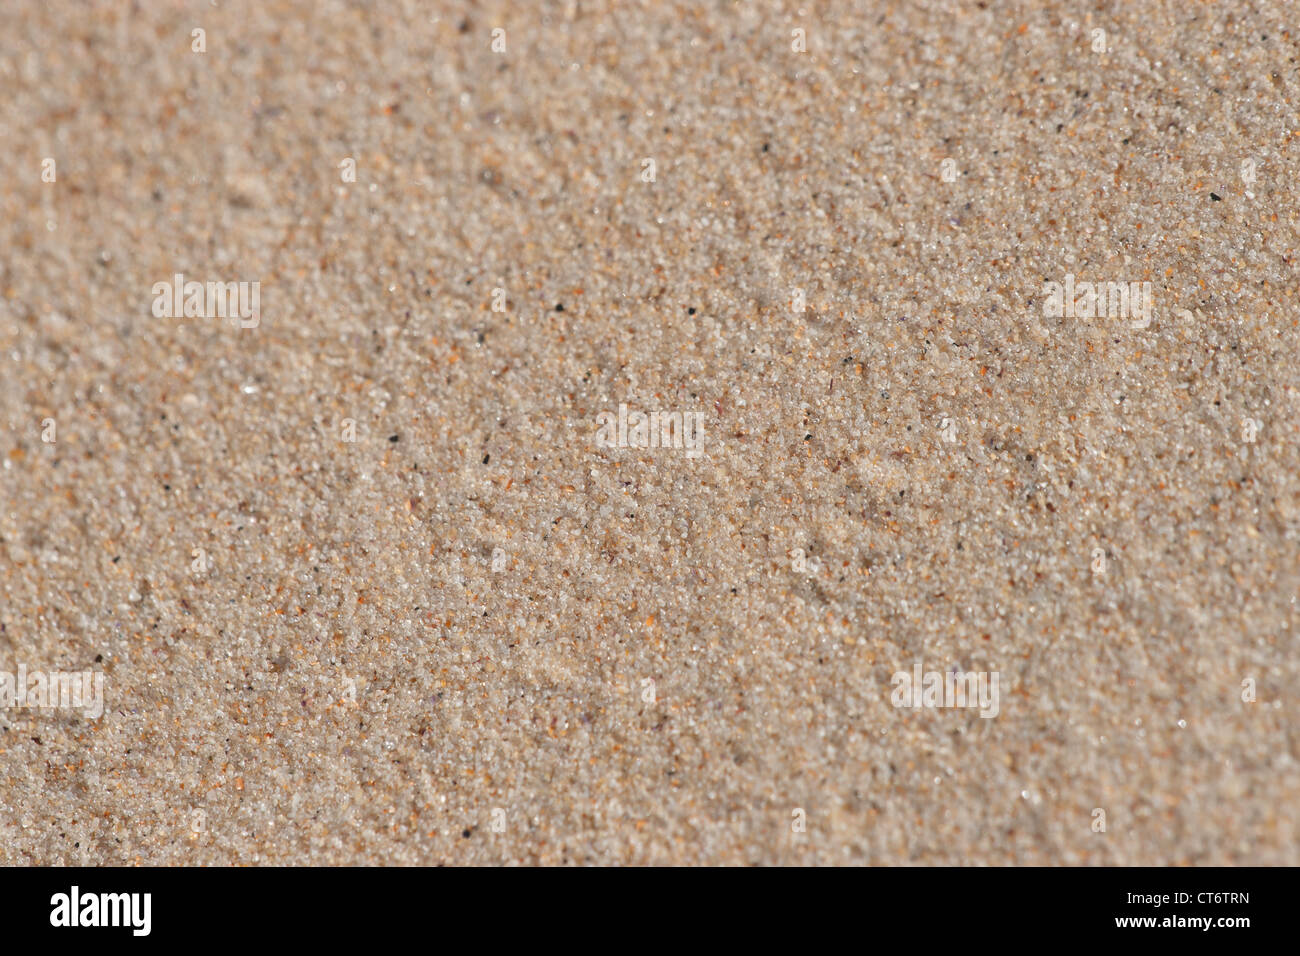 a perfect beach sand background texture image - Stock Image